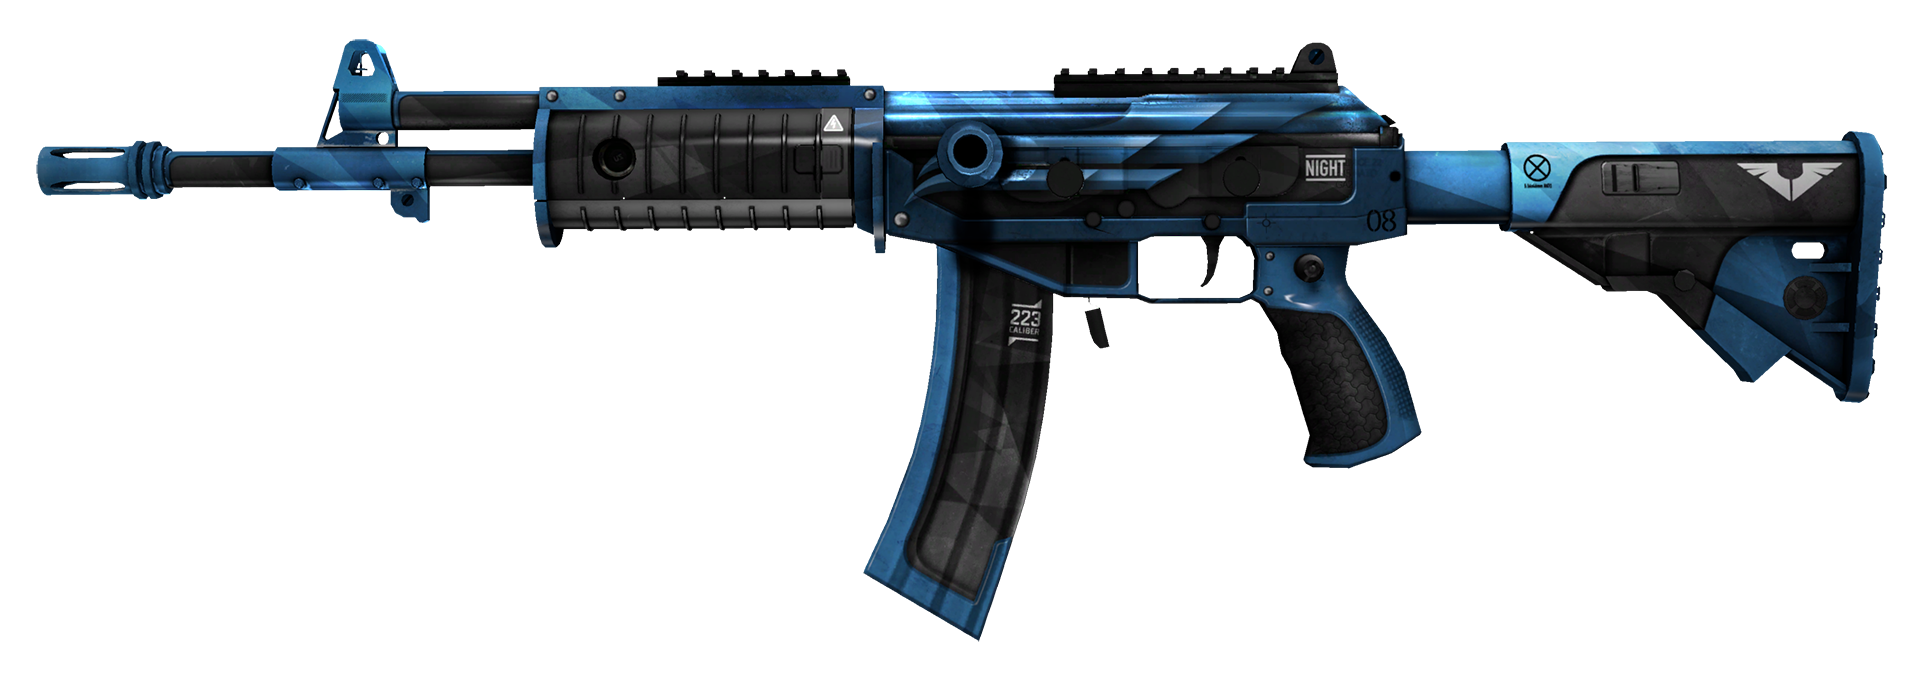 Galil AR Stone Cold Large Rendering